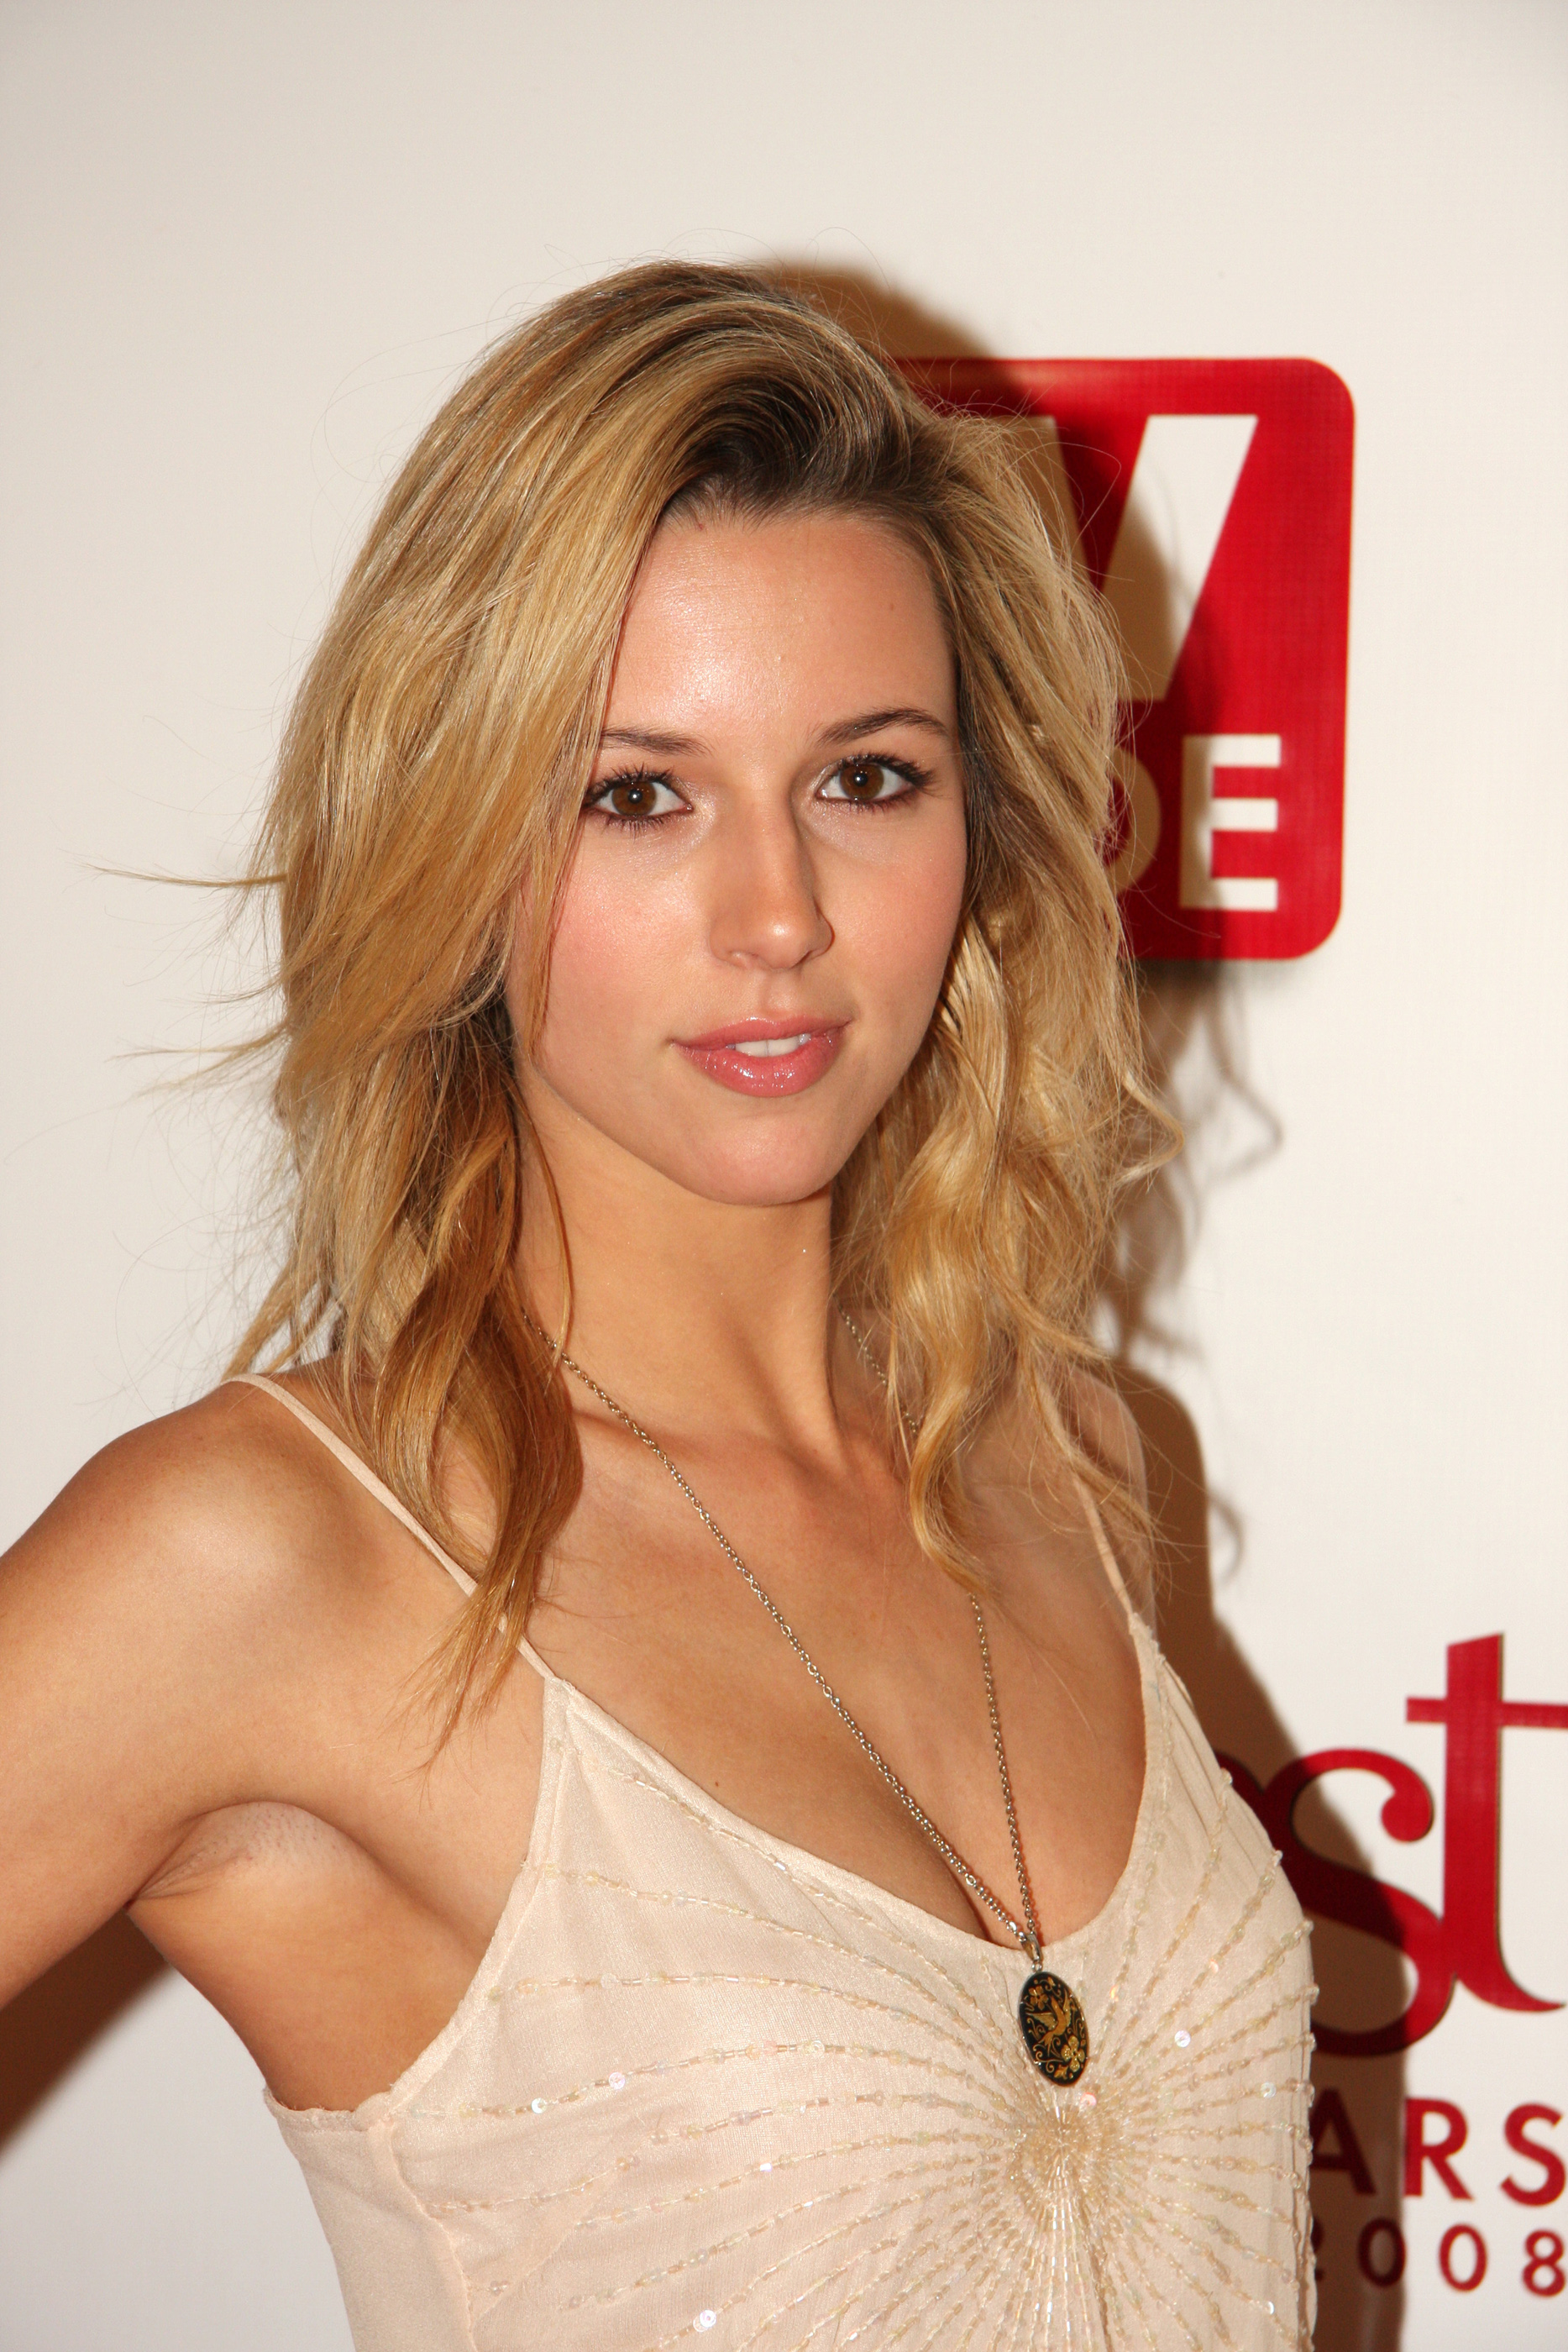 Alona Sexy alona tal wallpapers, music, hq alona tal pictures | 4k